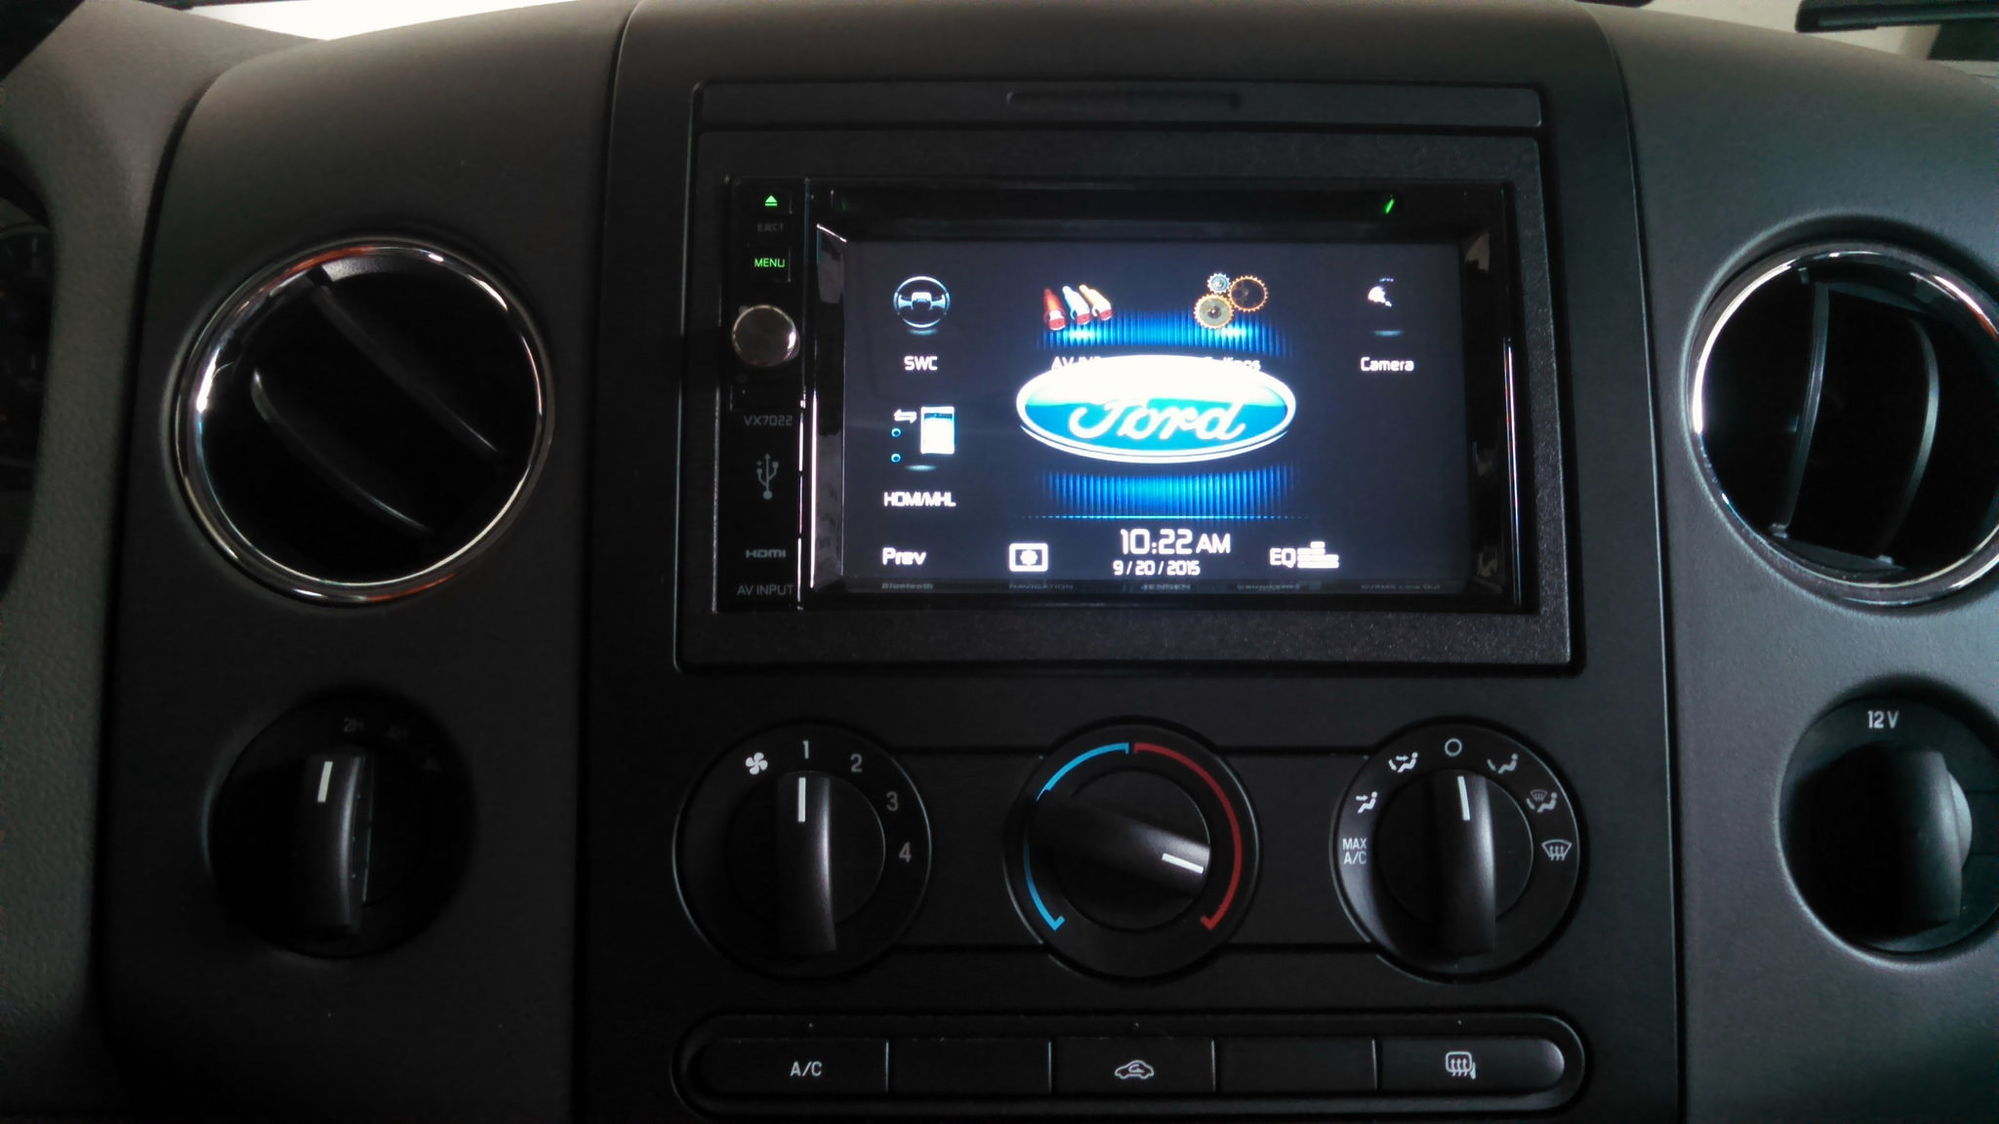 Aftermarket Backup Camera >> Aftermarket Backup Camera - Installed in tailgate handle - Page 10 - Ford F150 Forum - Community ...